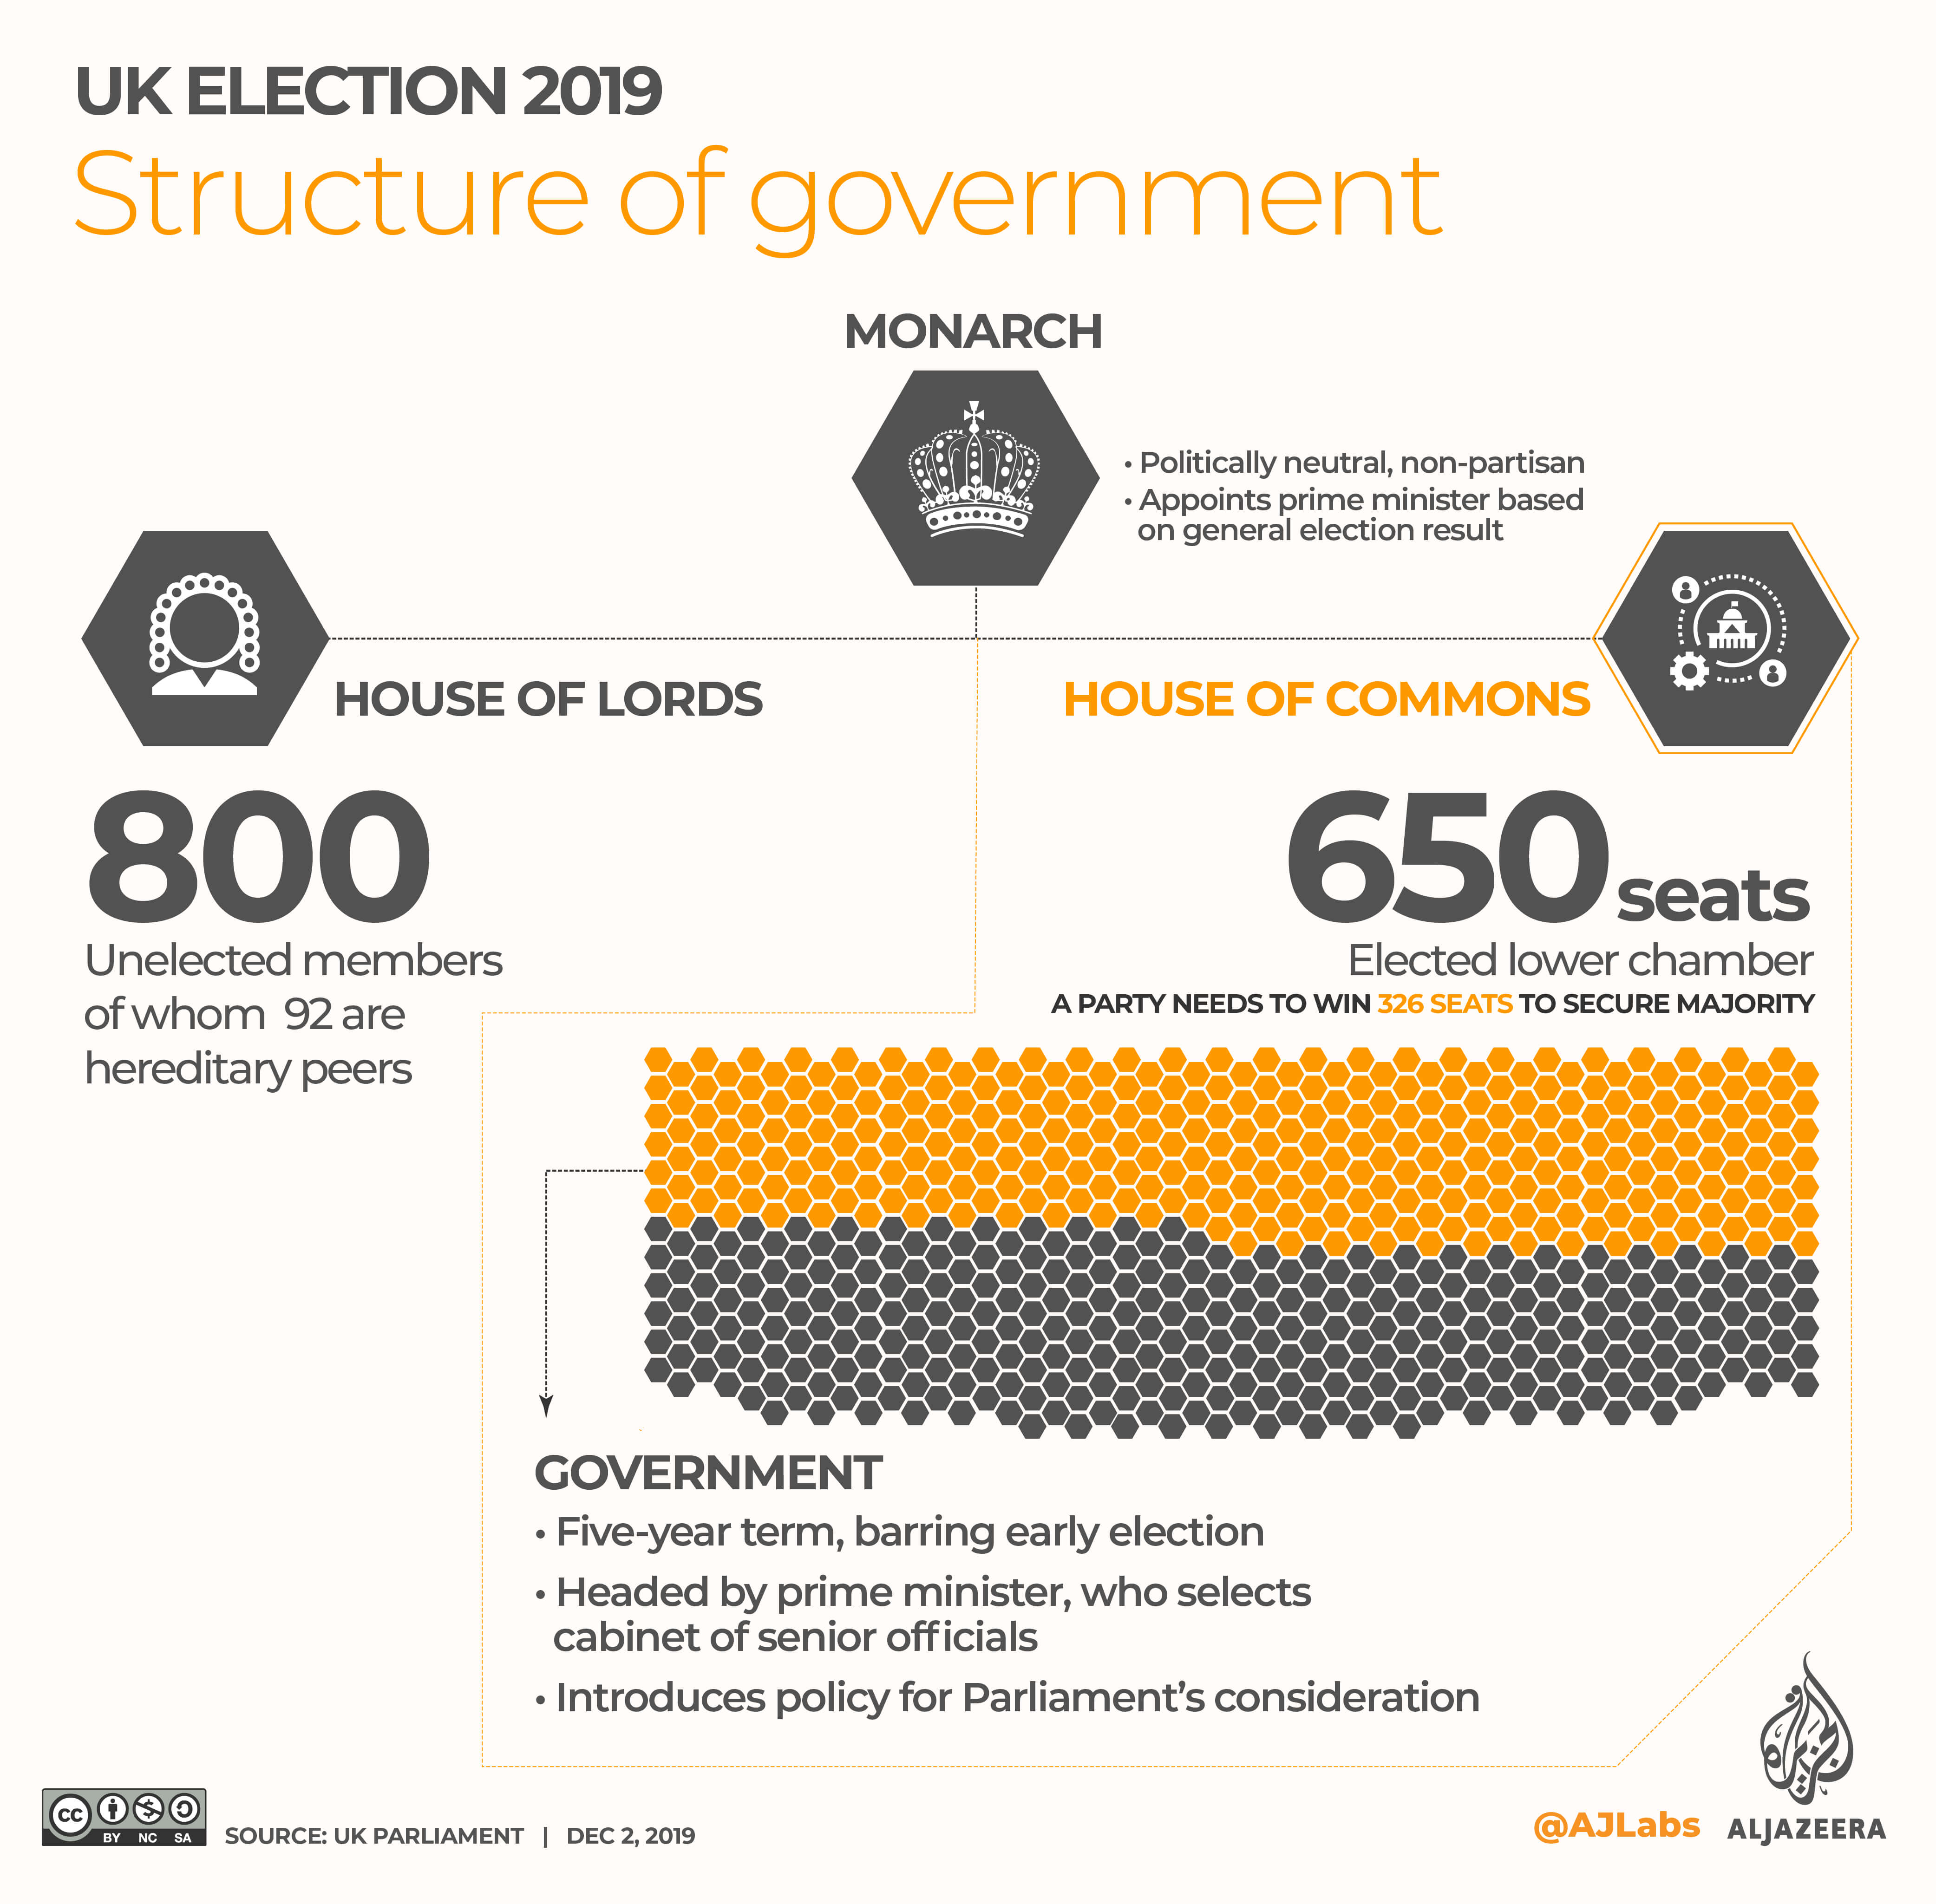 INTERACTIVE: UK election 2019 - Structure of government